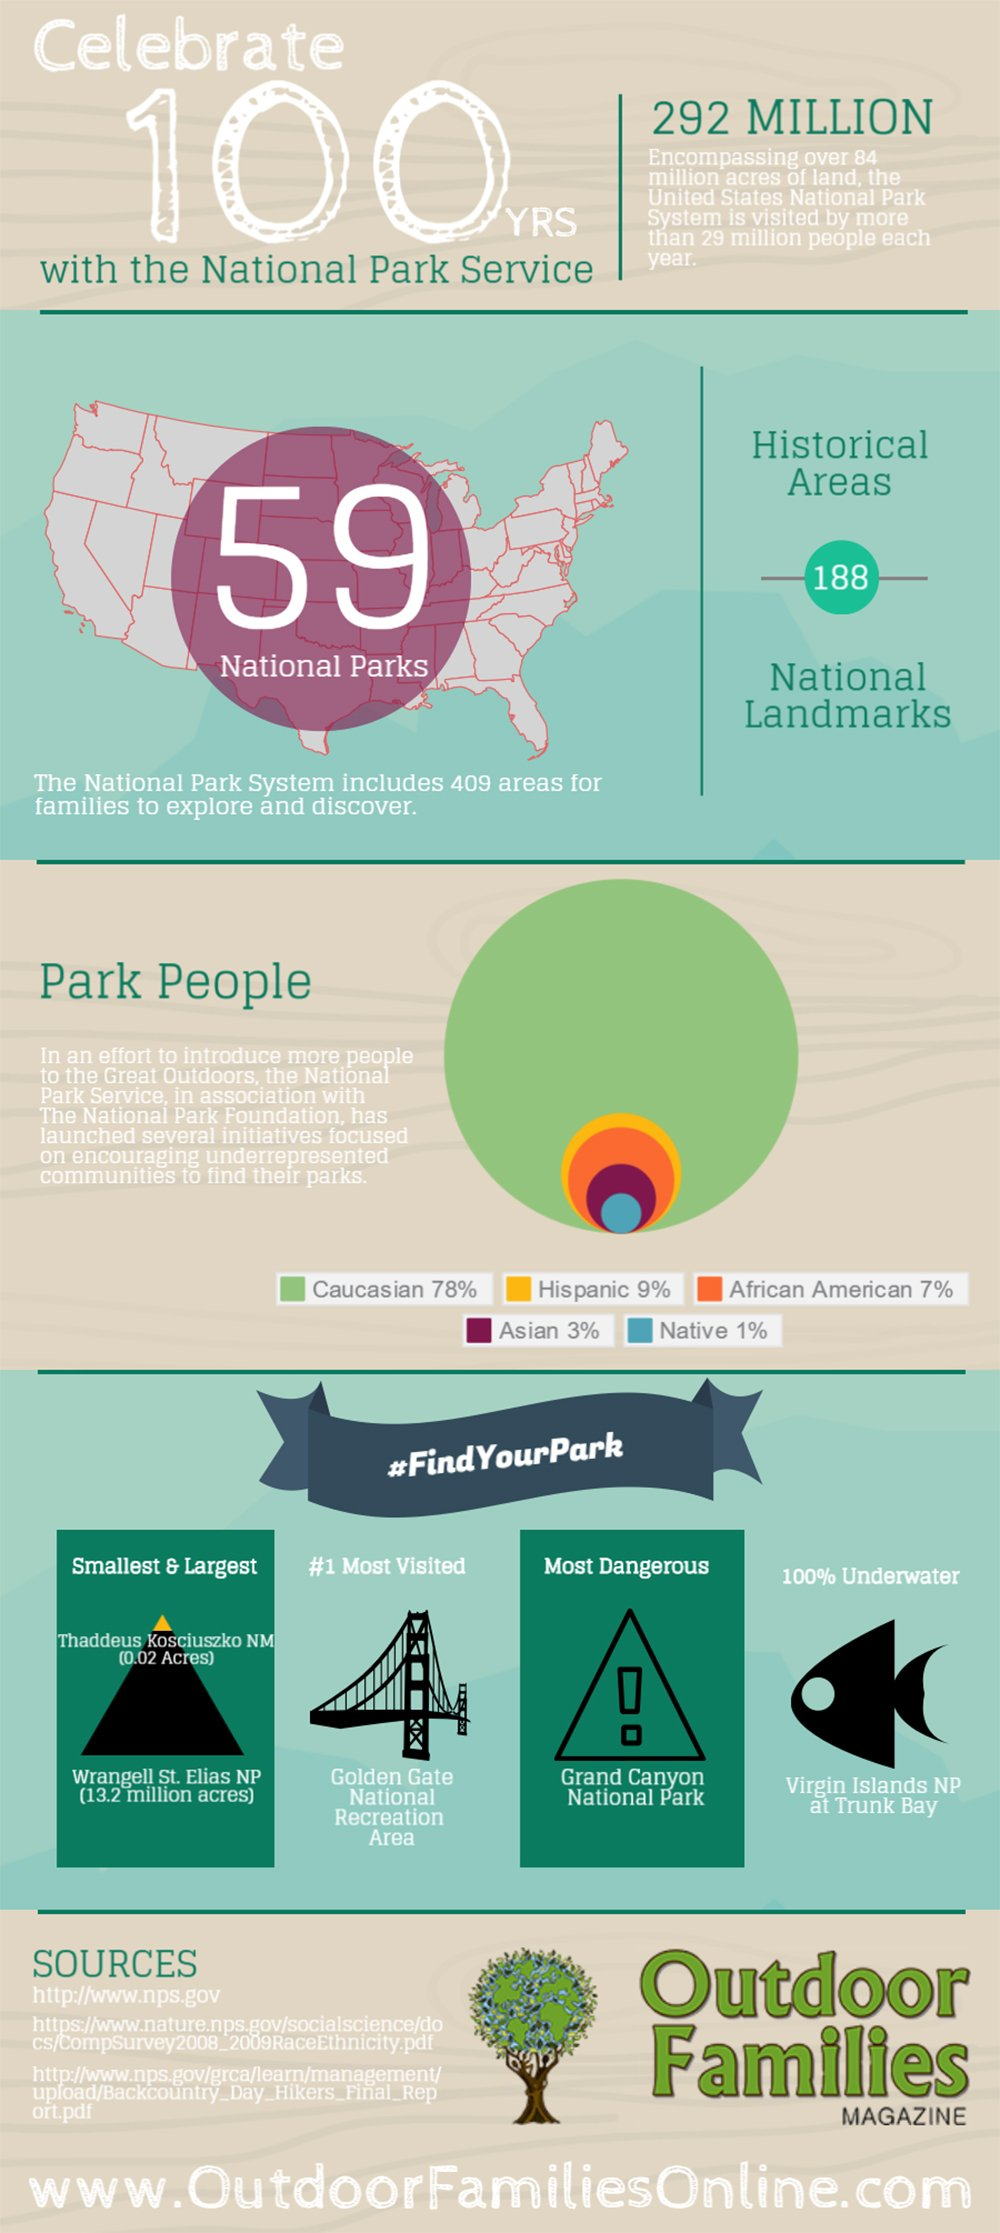 Celebrate the National Park Service Centennial - Infographic - Outdoor Families Magazine